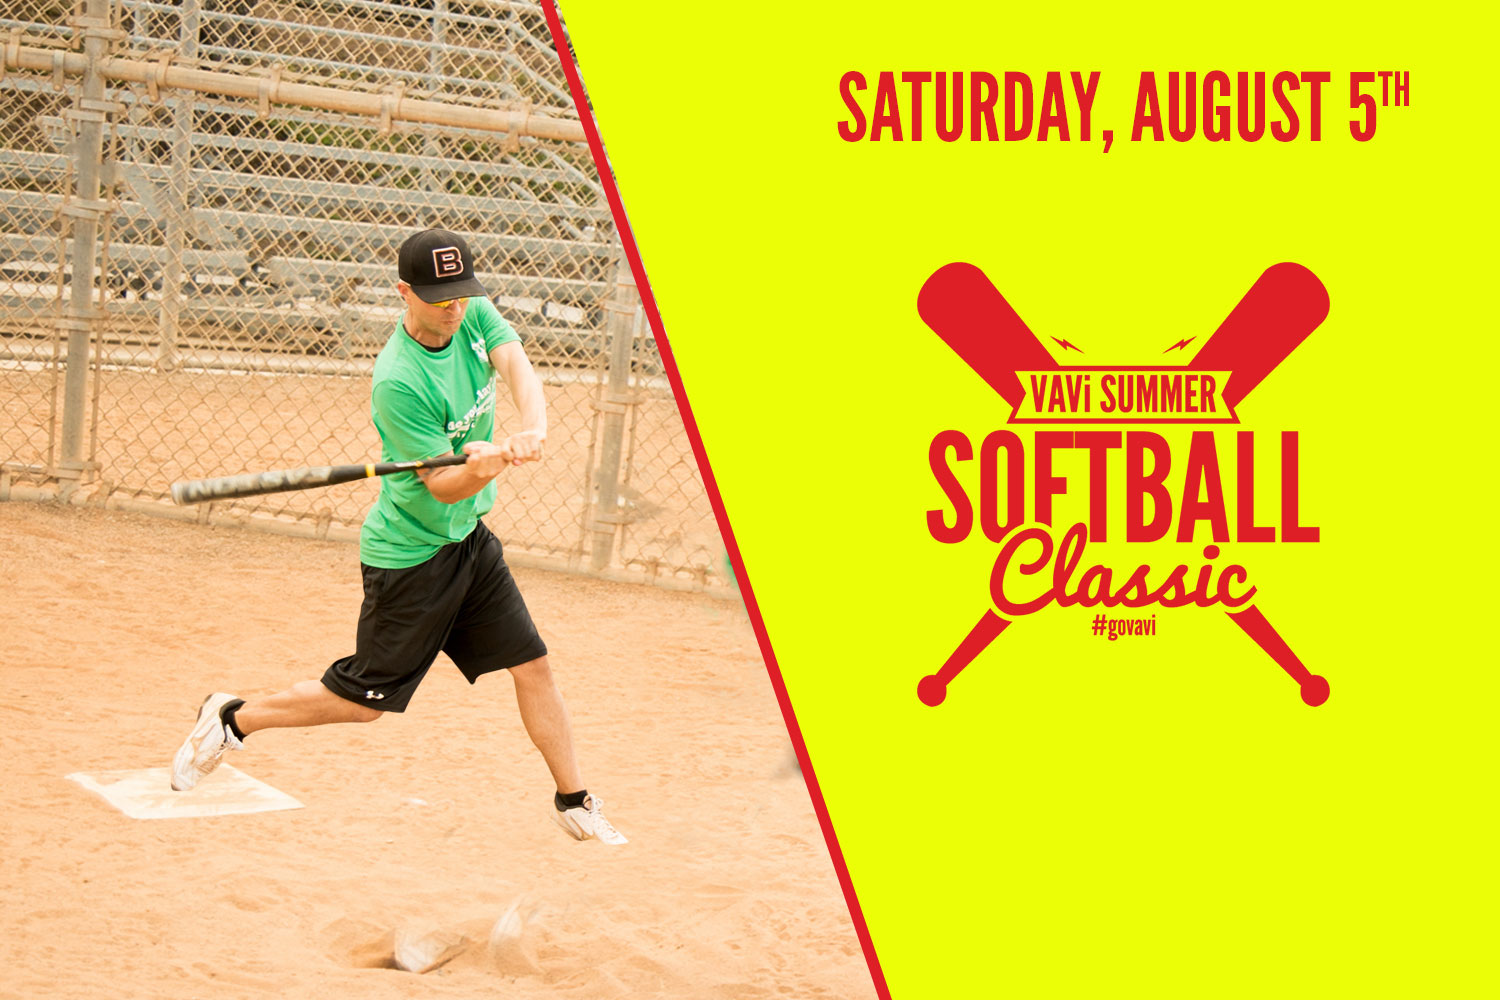 softball-tourney